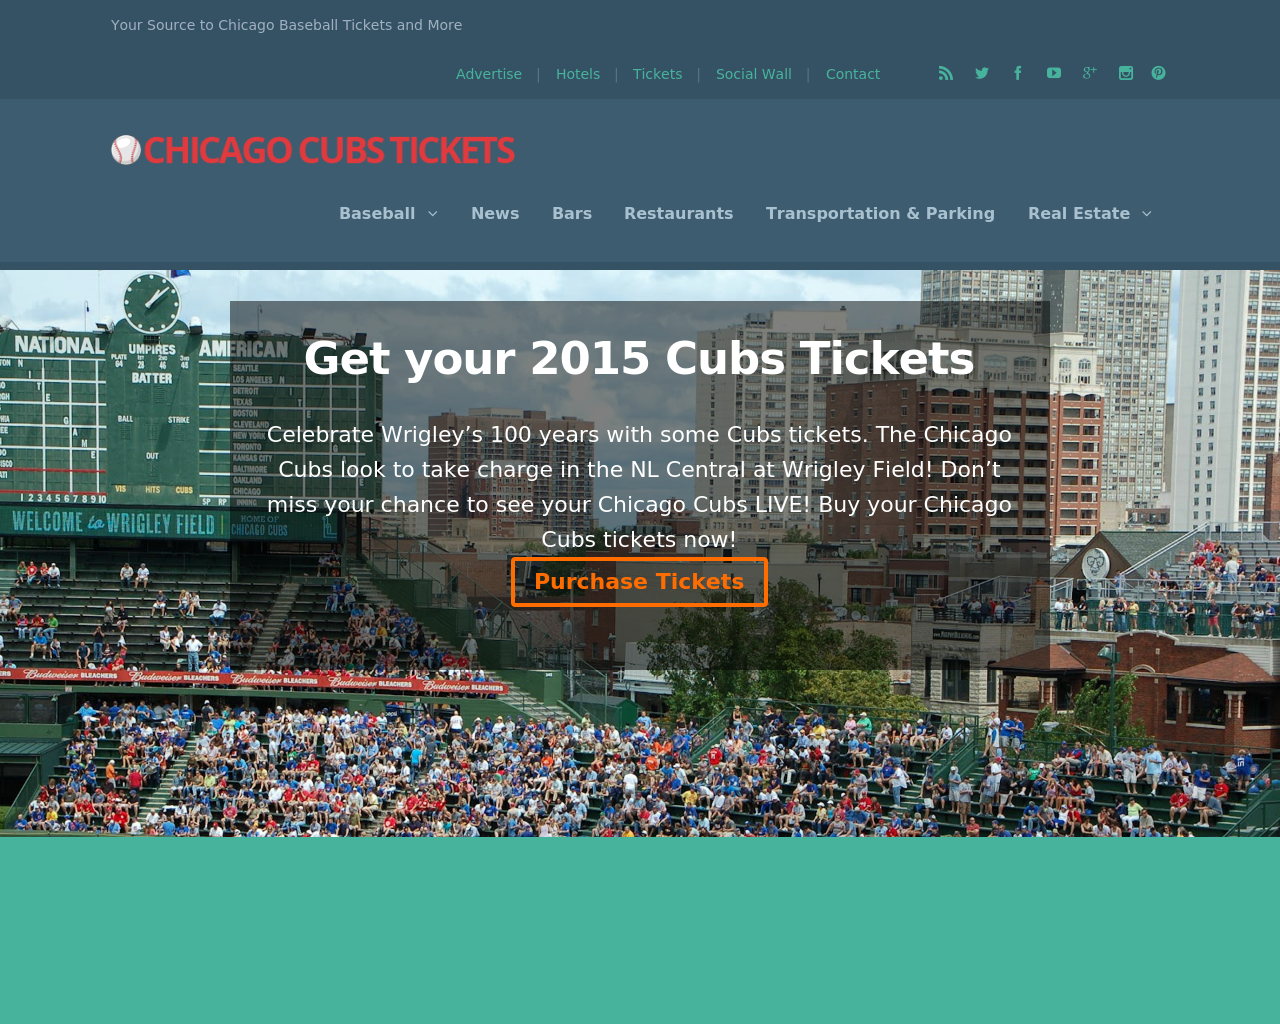 Chicago-Cubs-Tickets-Advertising-Reviews-Pricing